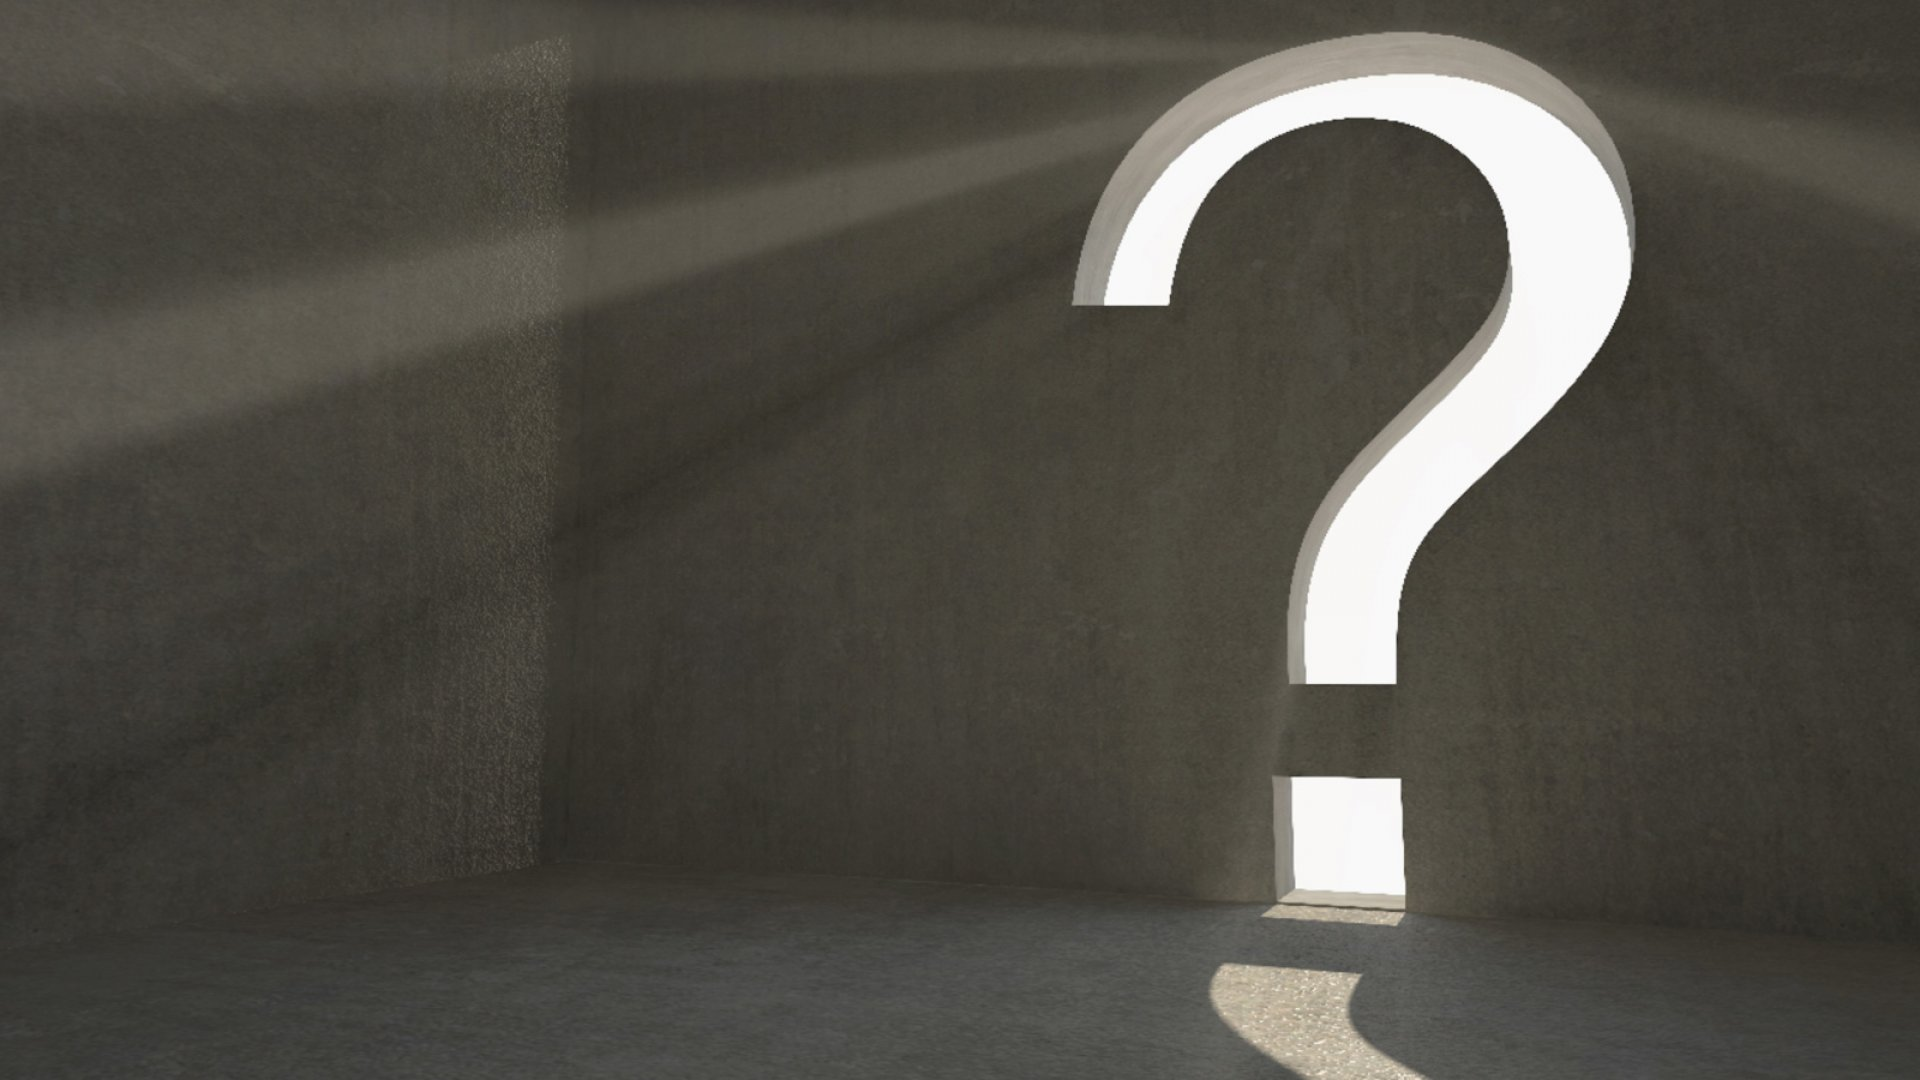 6 Questions You Should Ask Yourself Every Day